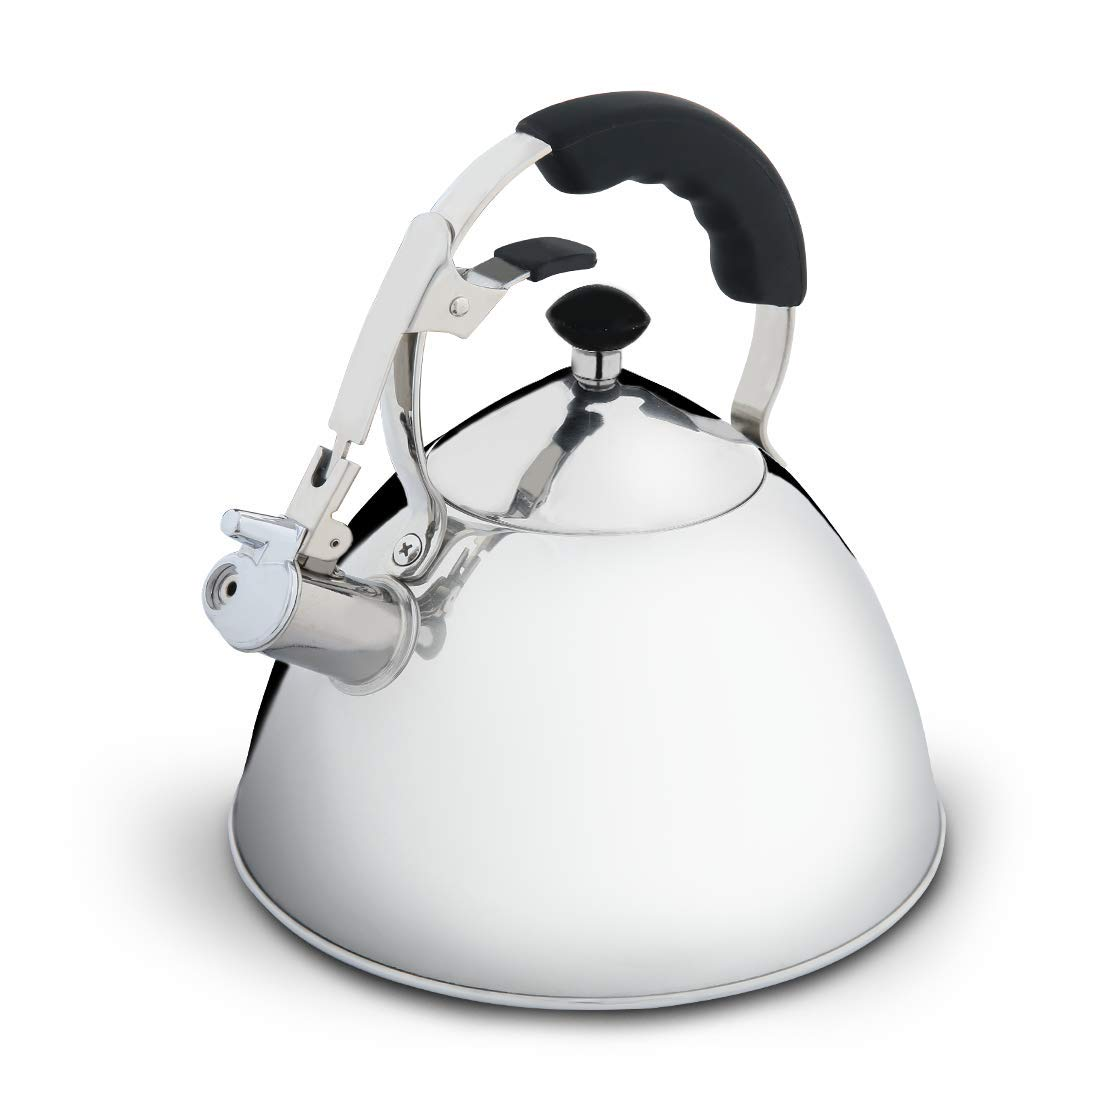 Whistling Tea Kettle,2.0L Stovetop Teapot Teakettles with 18/8 Stainless Steel,Available for Gas/Induction/Electric/Ceramic/Halogen/Wood Stove